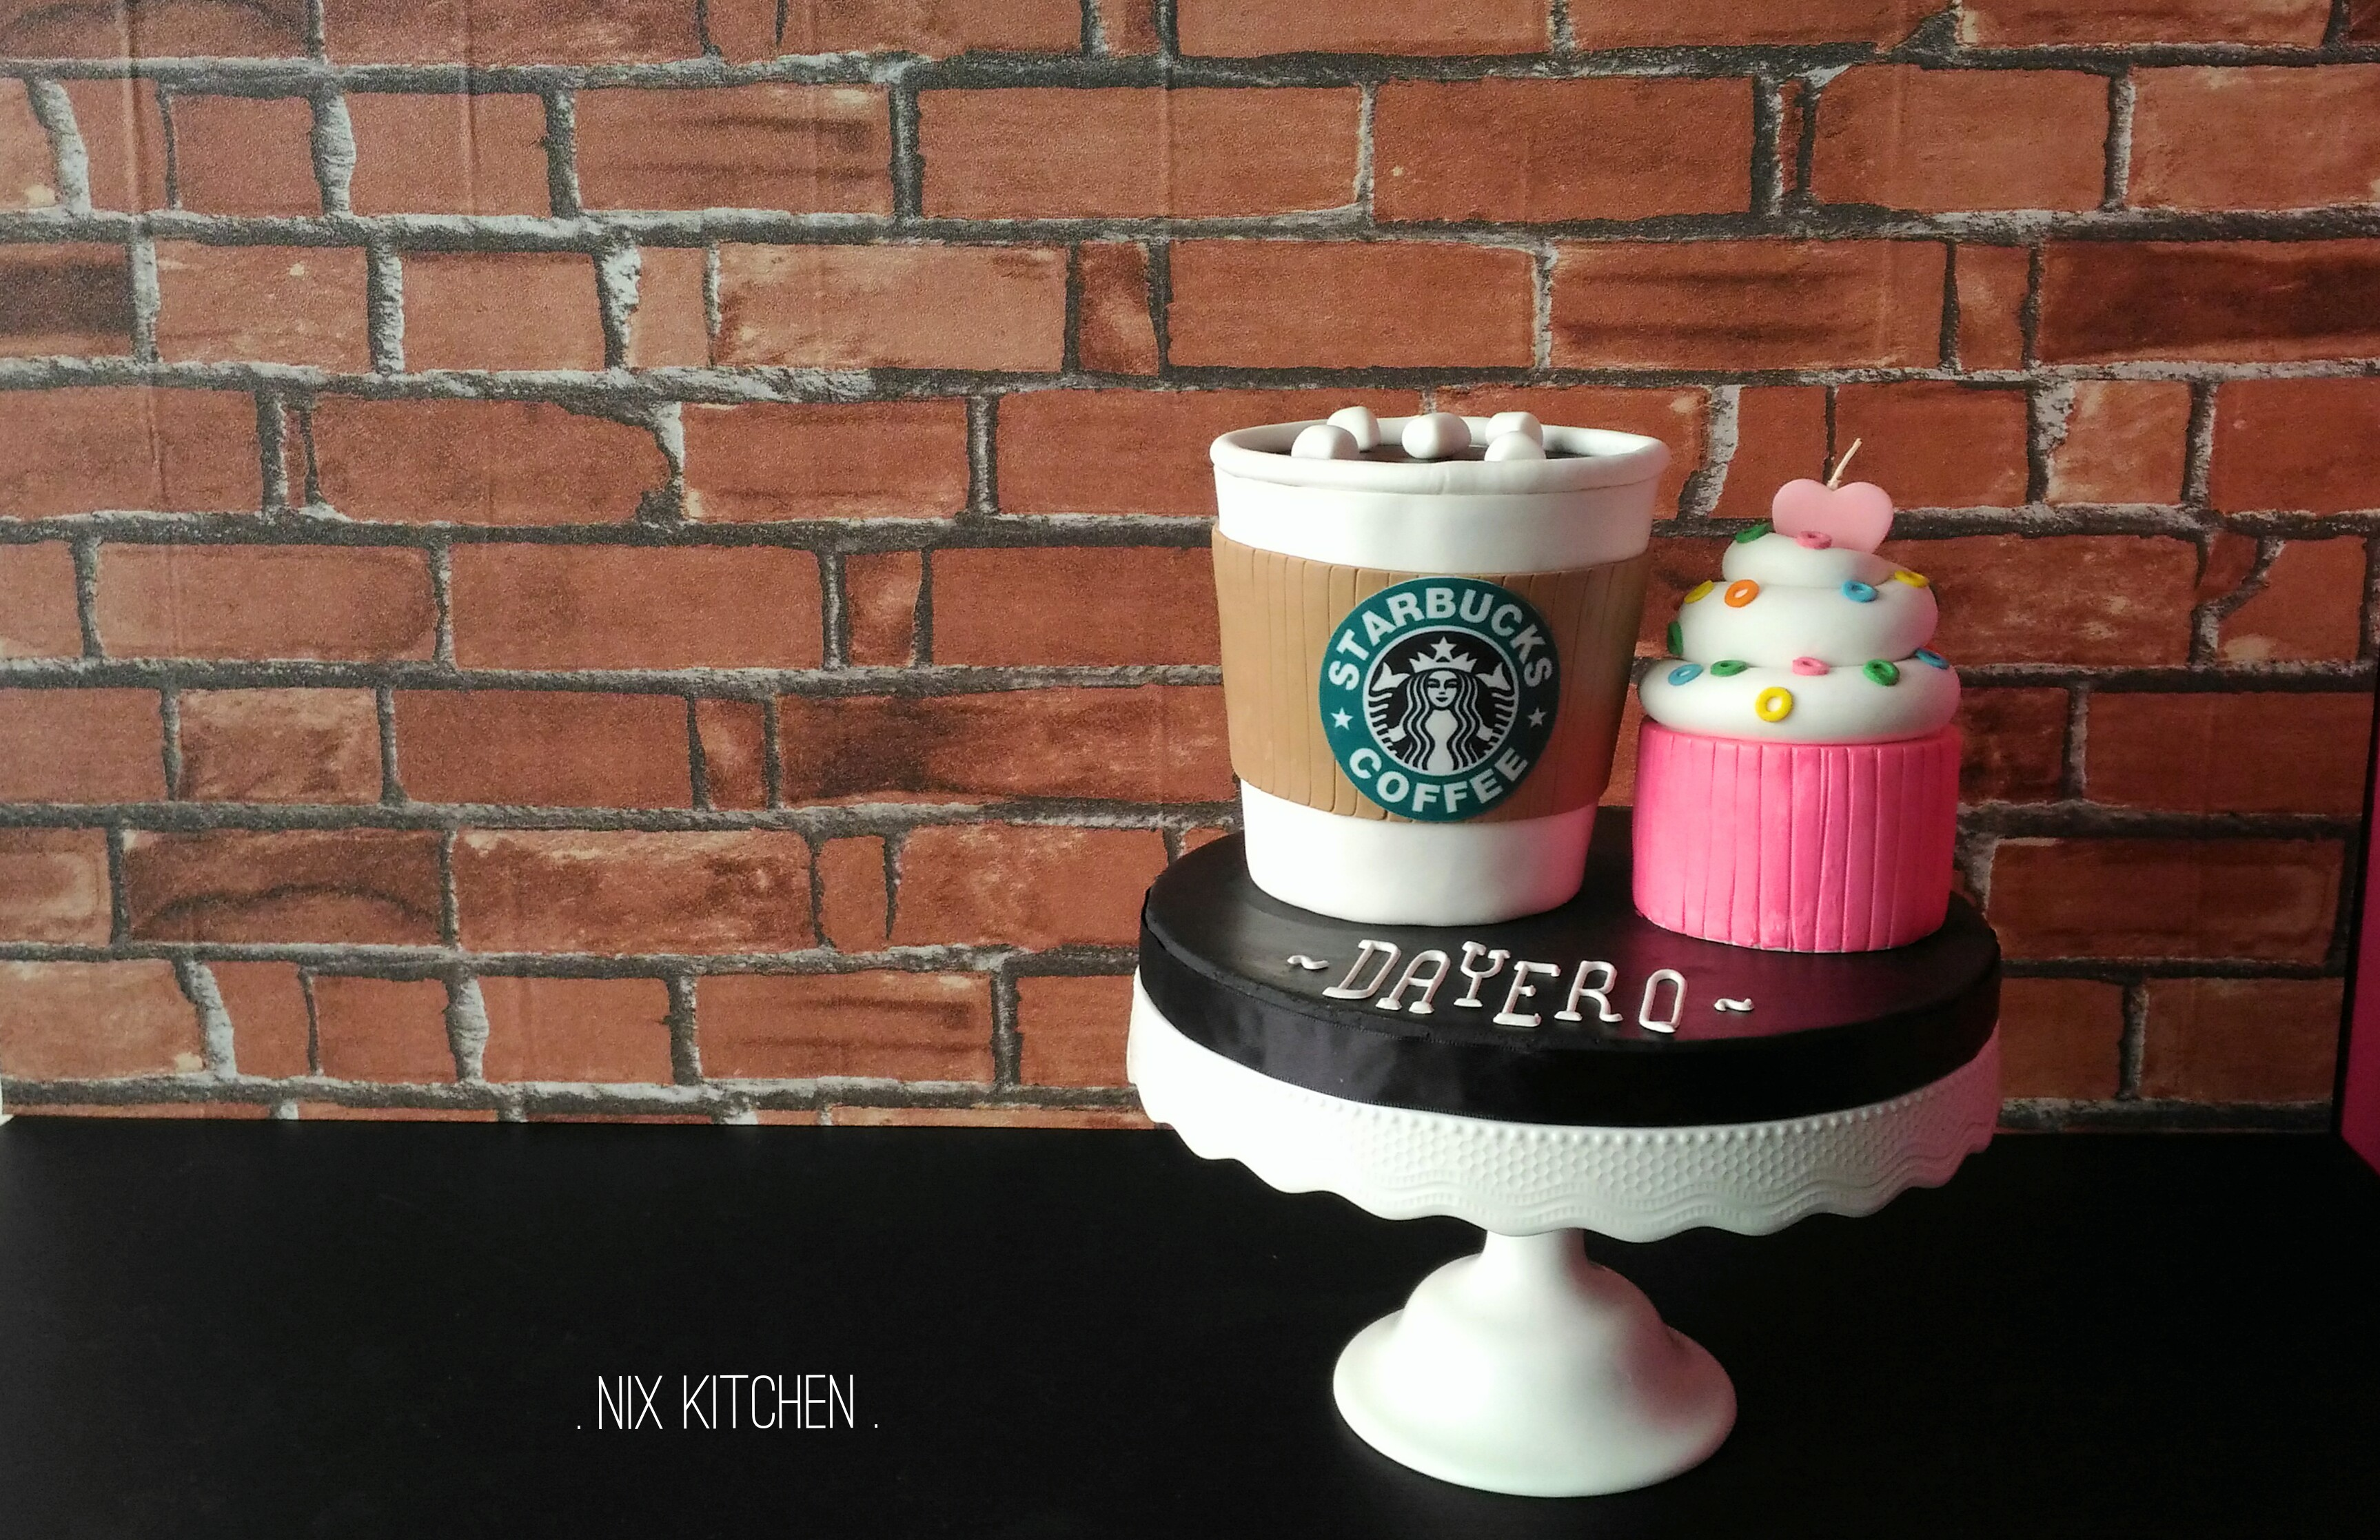 Starbuck coffee cup cake and cupcakes